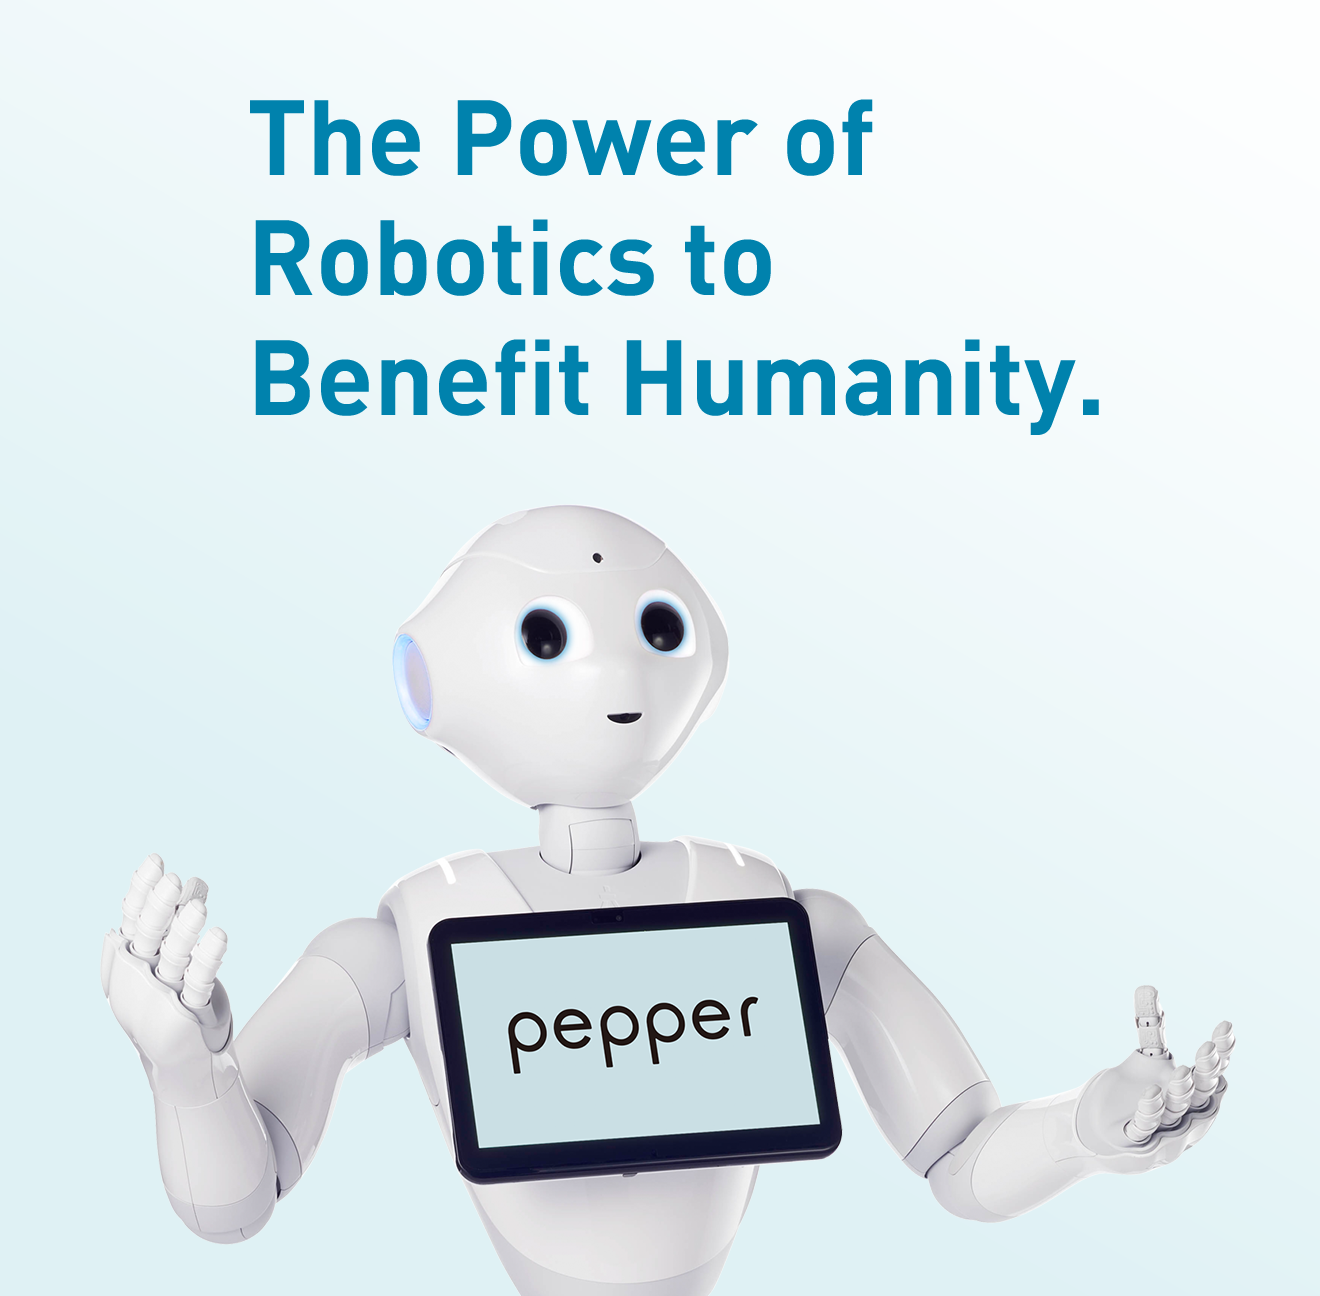 The Power of Robotics to Benefit Humanity.